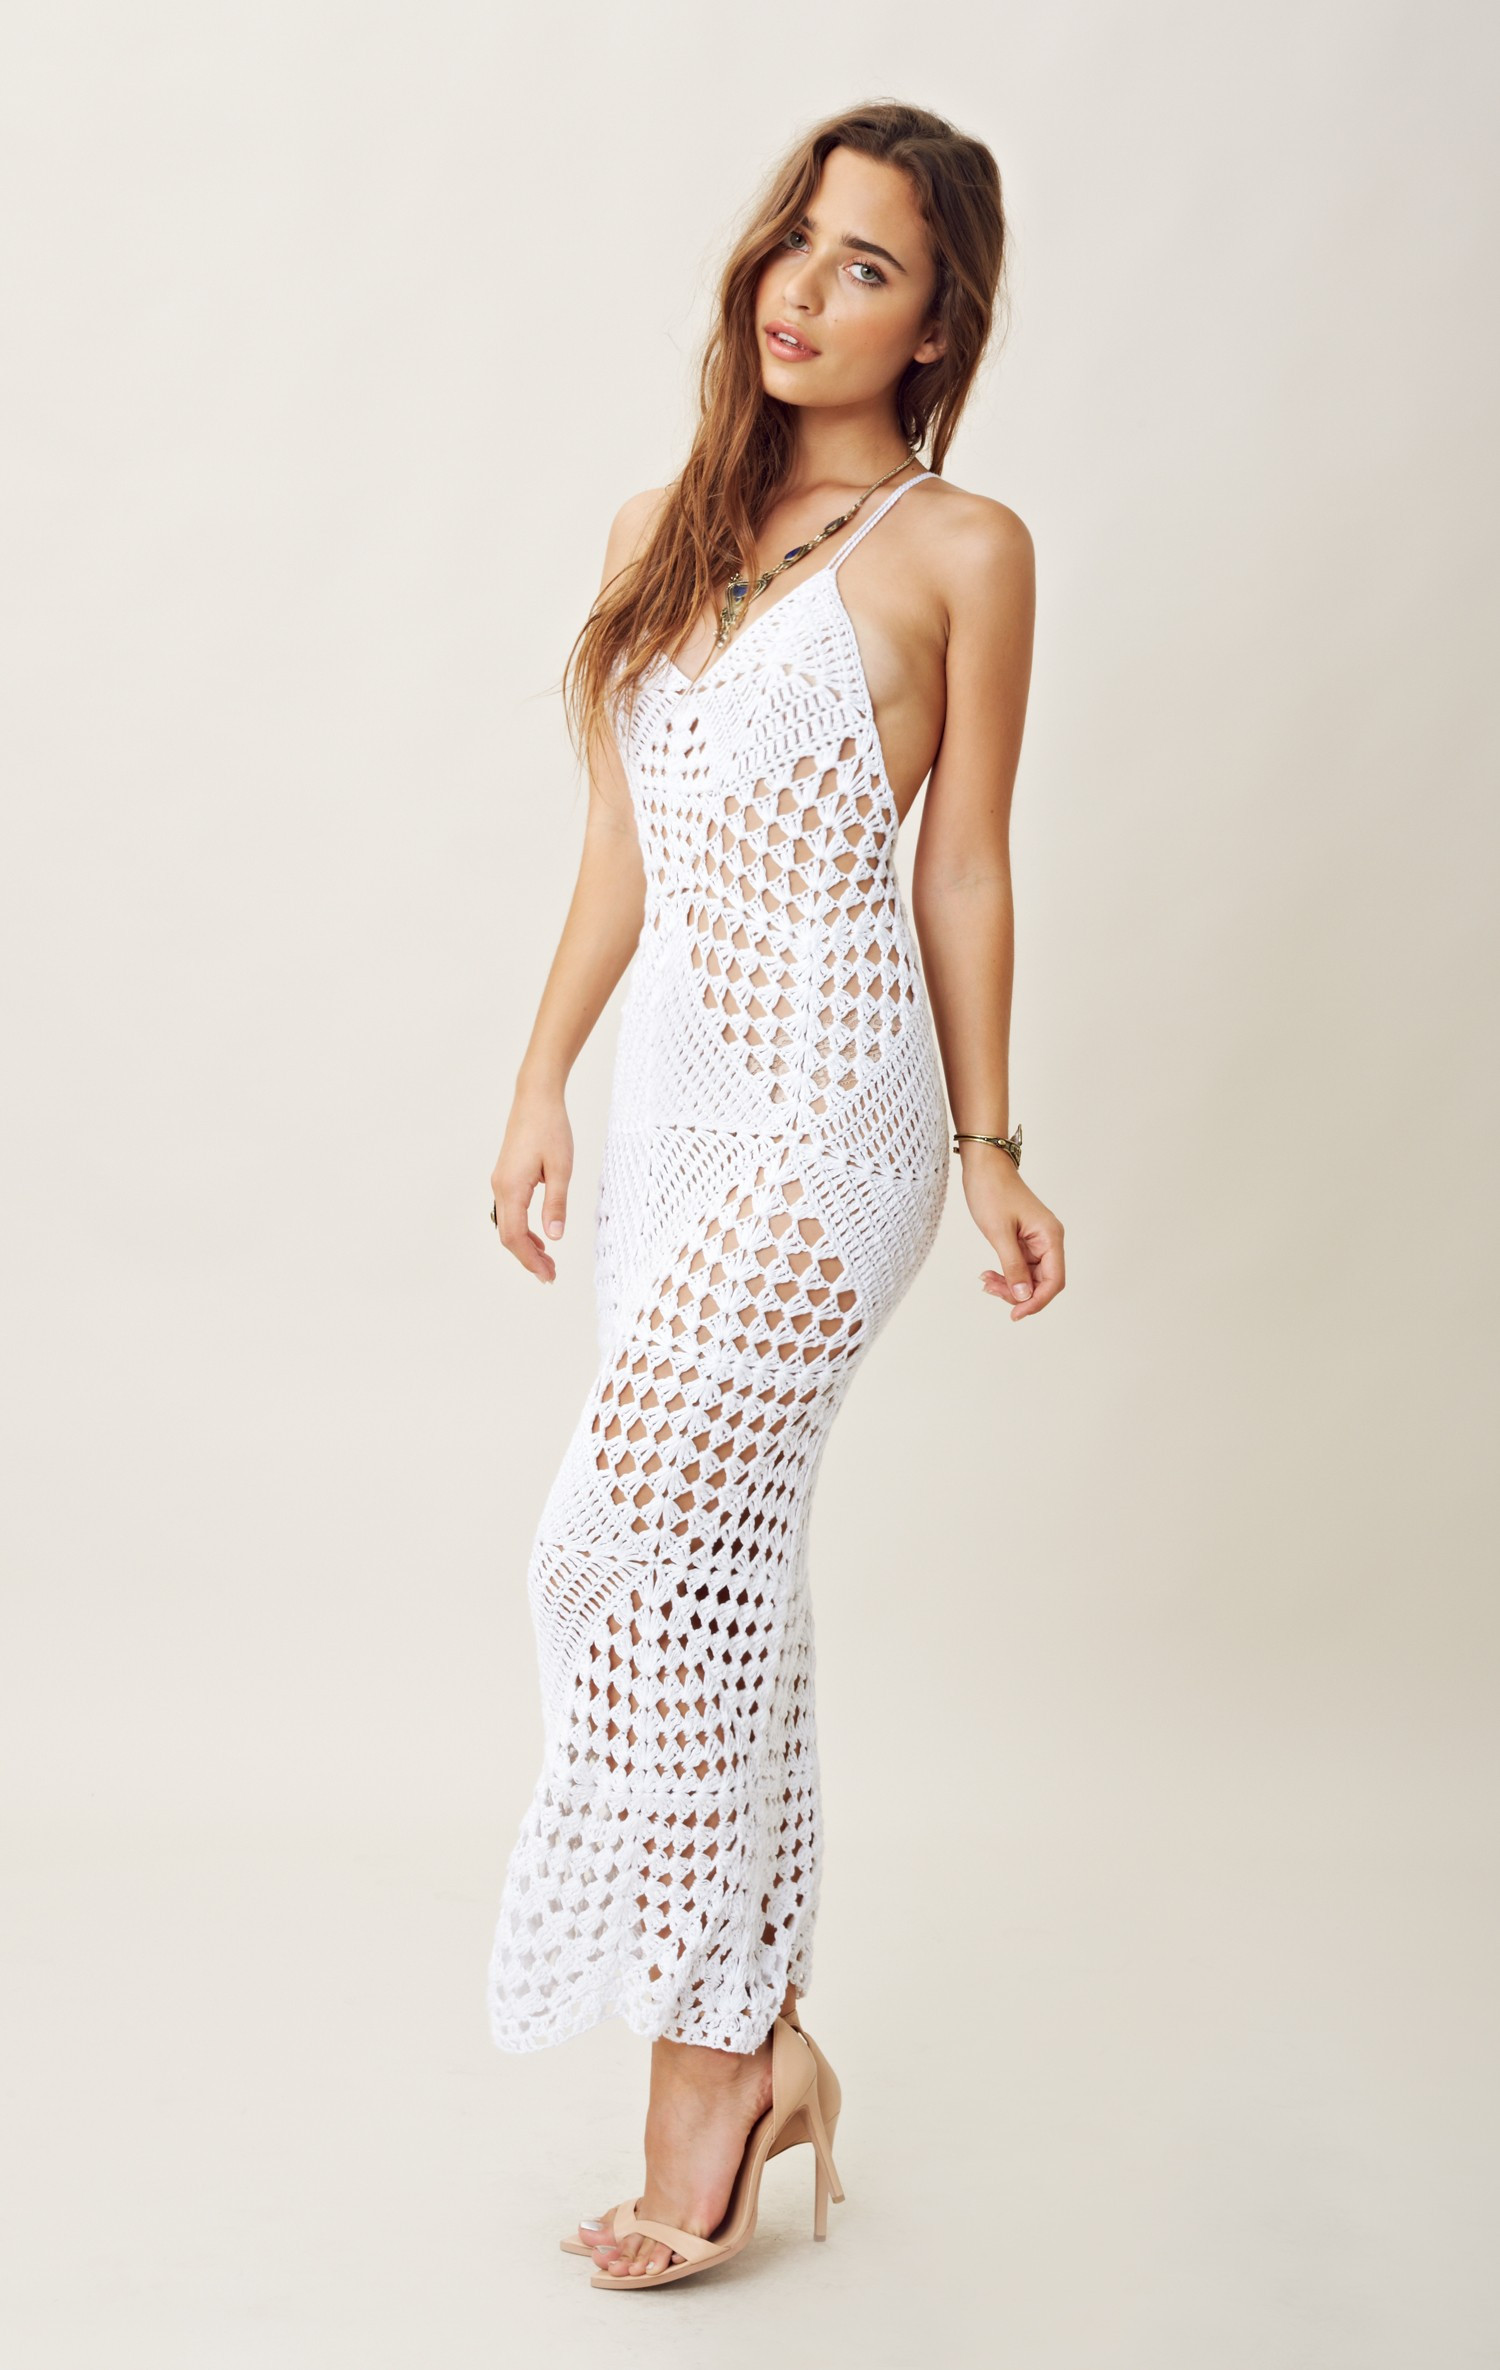 White Crochet Dress Fresh Indah Crochet Maxi Dress In White Of Adorable 49 Pics White Crochet Dress